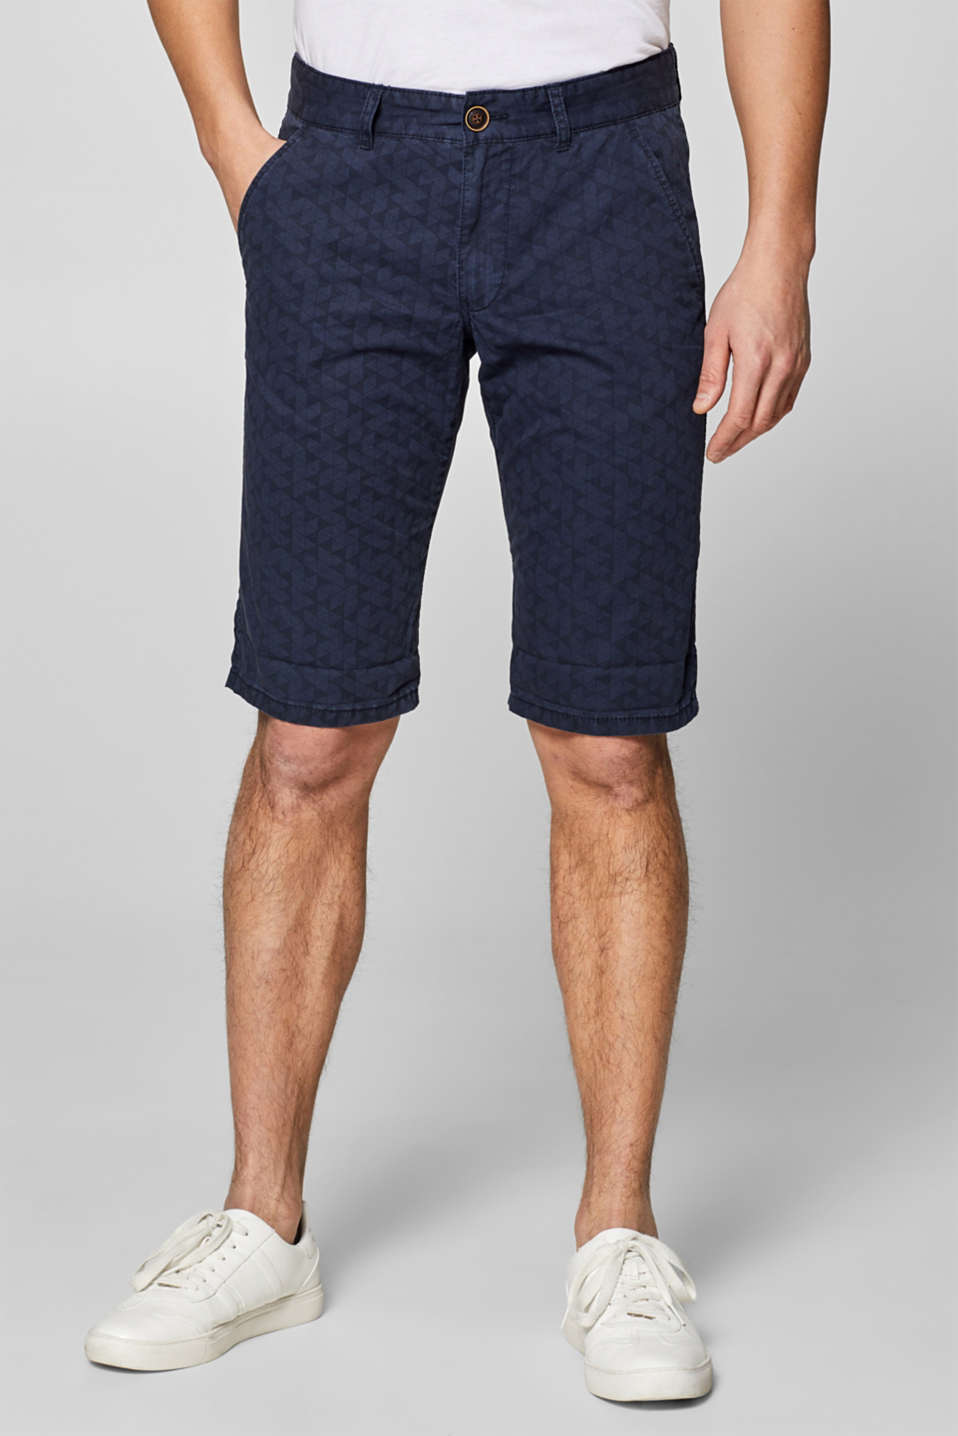 edc - Shorts in 100% cotton, with organic cotton